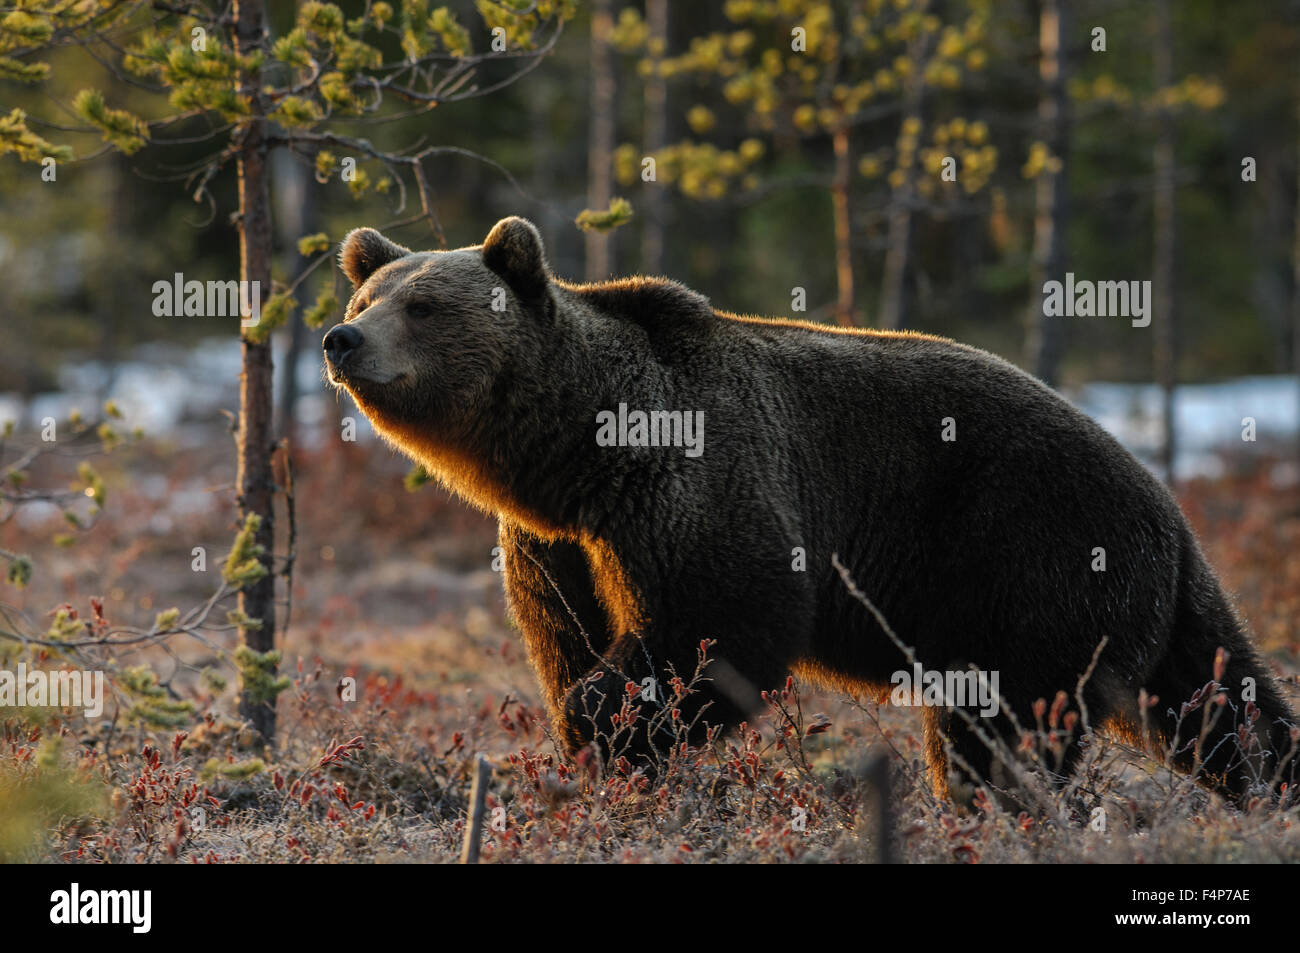 European brown bear in snow in early morning backlight, spring in taiga forest in Finland. - Stock Image